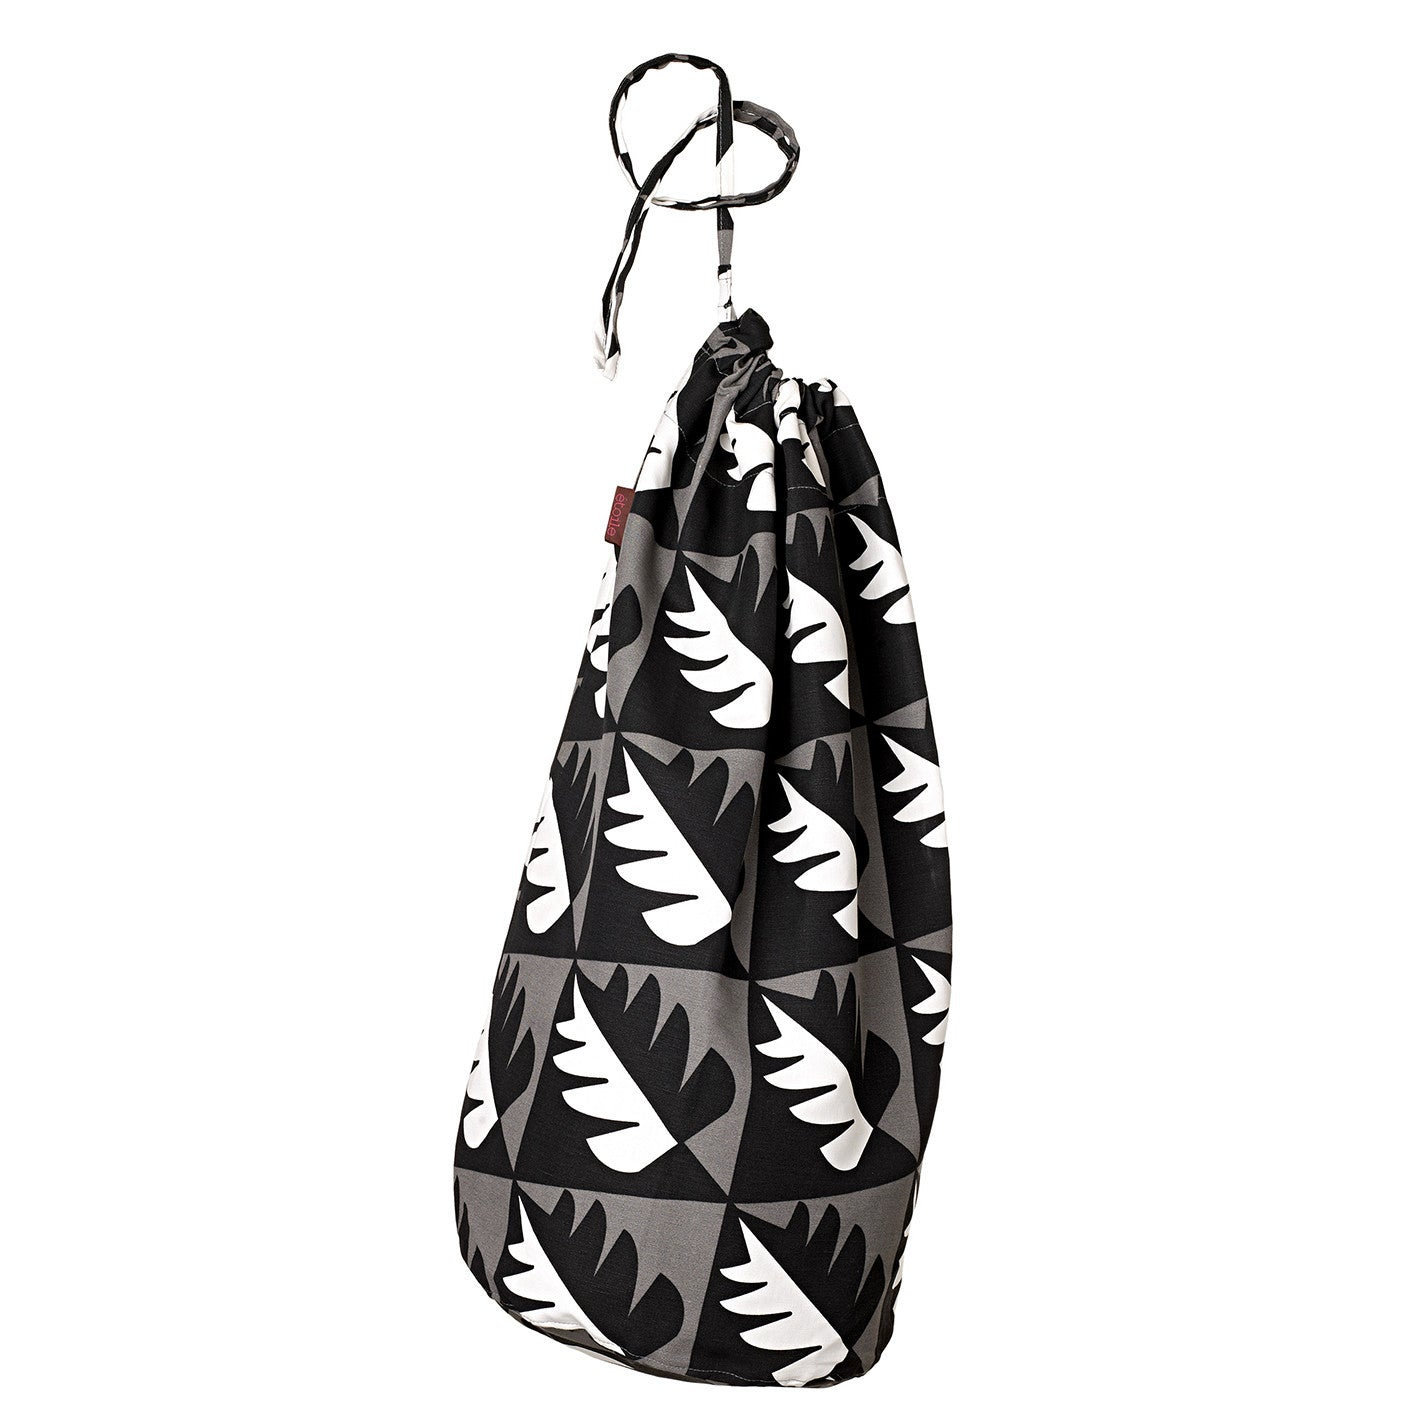 Betty Tree Pattern Linen Cotton Drawstring Laundry & Storage  Bag in Stone Grey & Black ships from Canada (USA)